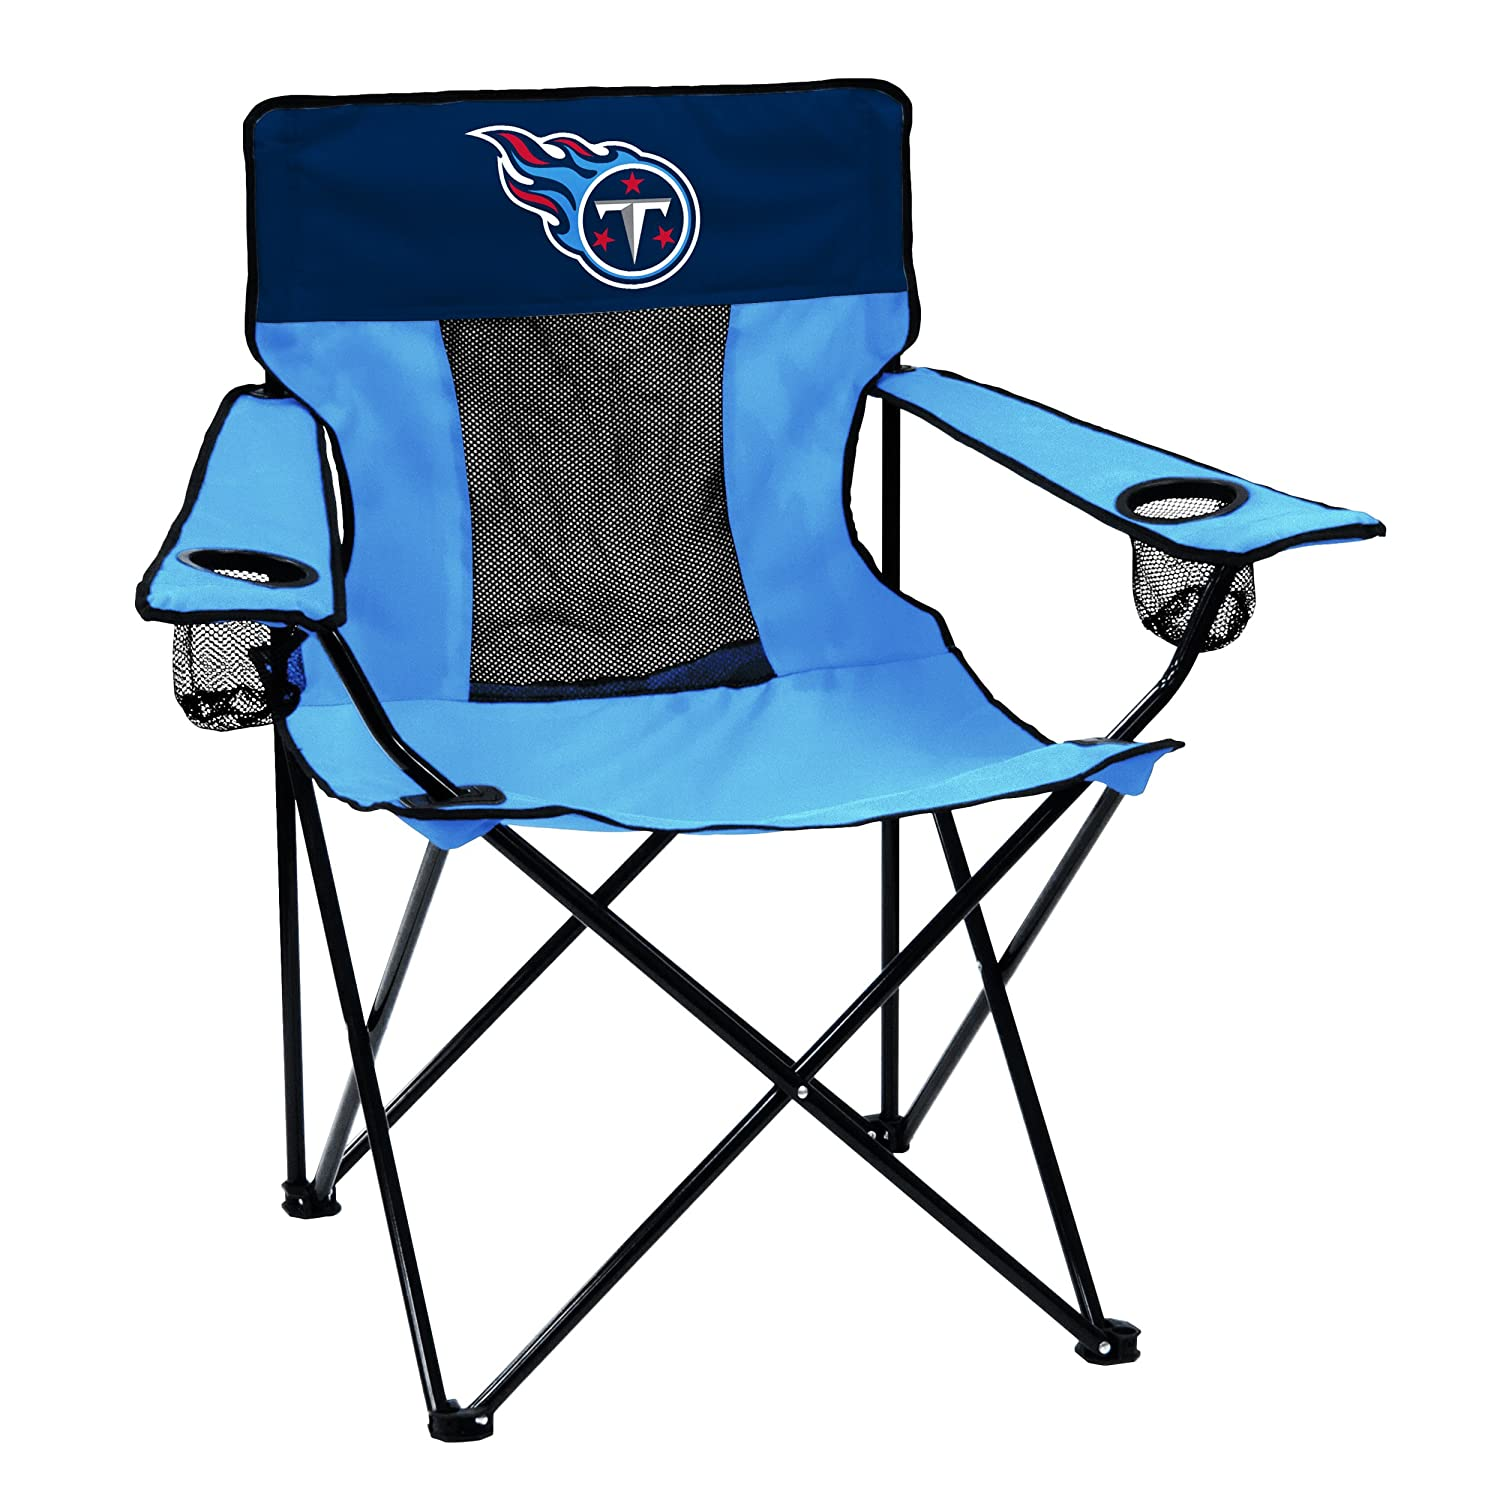 【税込?送料無料】 ロゴブランドNFL Folding Elite Chair with Chair Mesh Back and Titans Carryバッグ with Tennessee Titans Tennessee Titans B06X3RVSH4, プラセンタの美活:f7d1538e --- arianechie.dominiotemporario.com